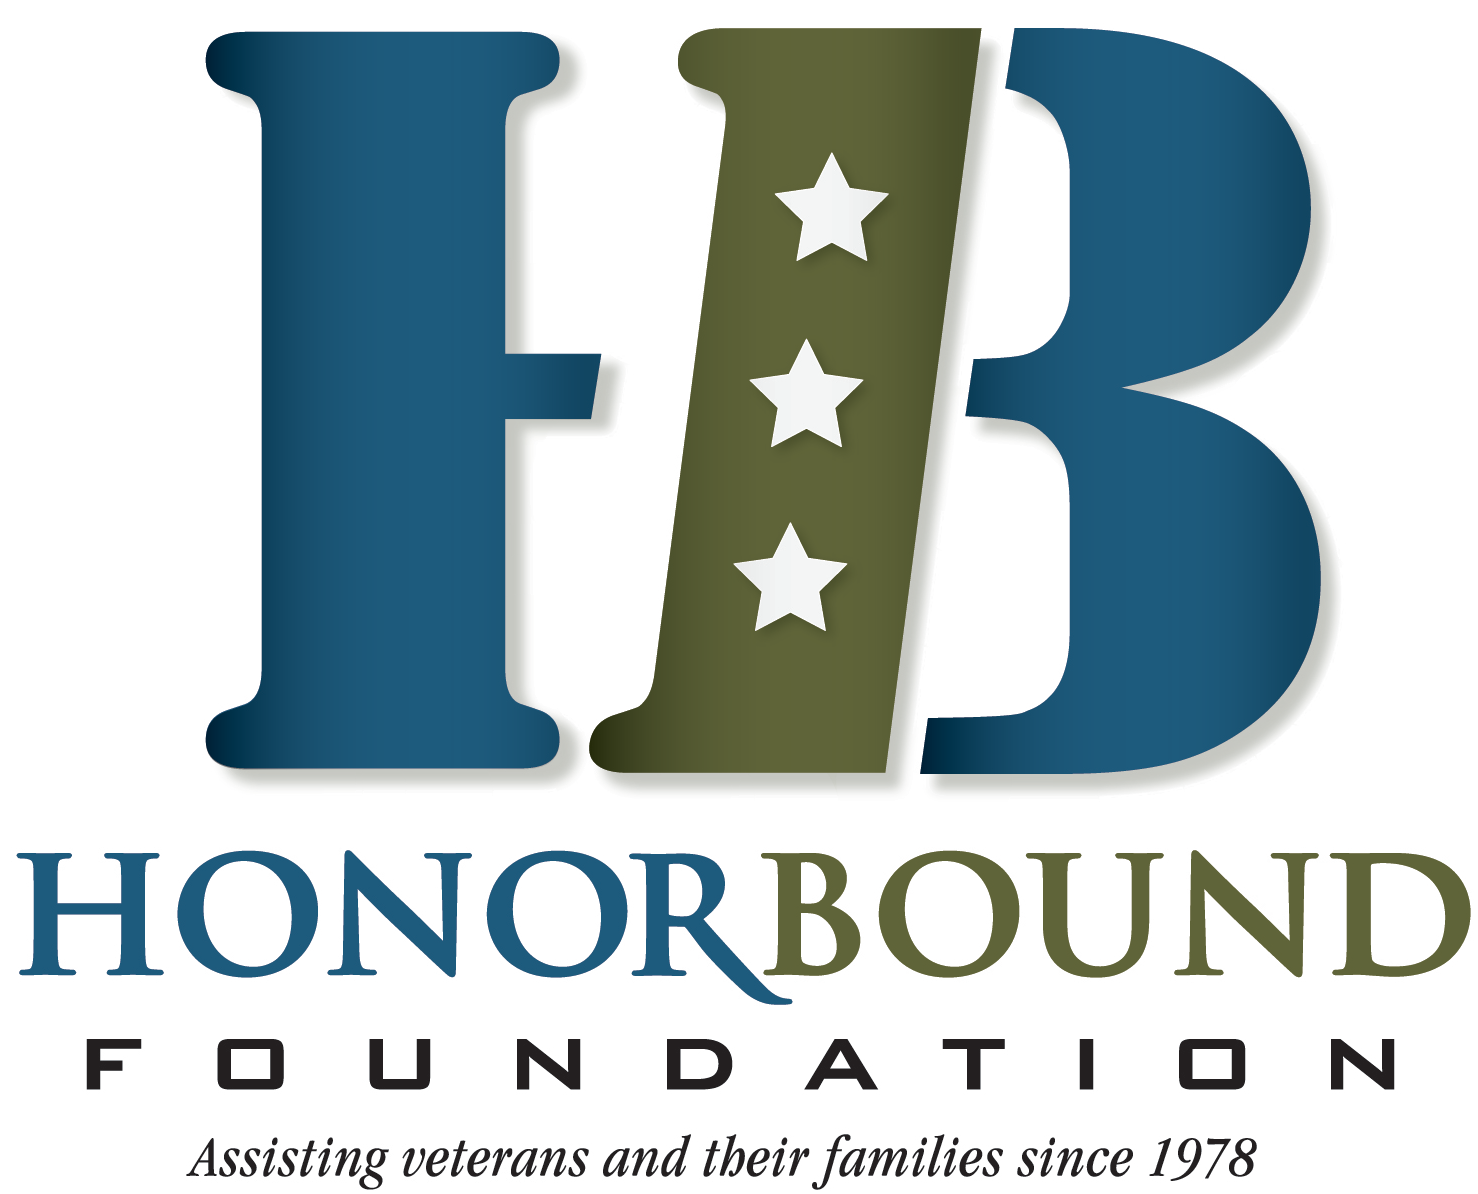 New Jersey Car Donations - HonorBound Foundation - DonatecarUSA.com